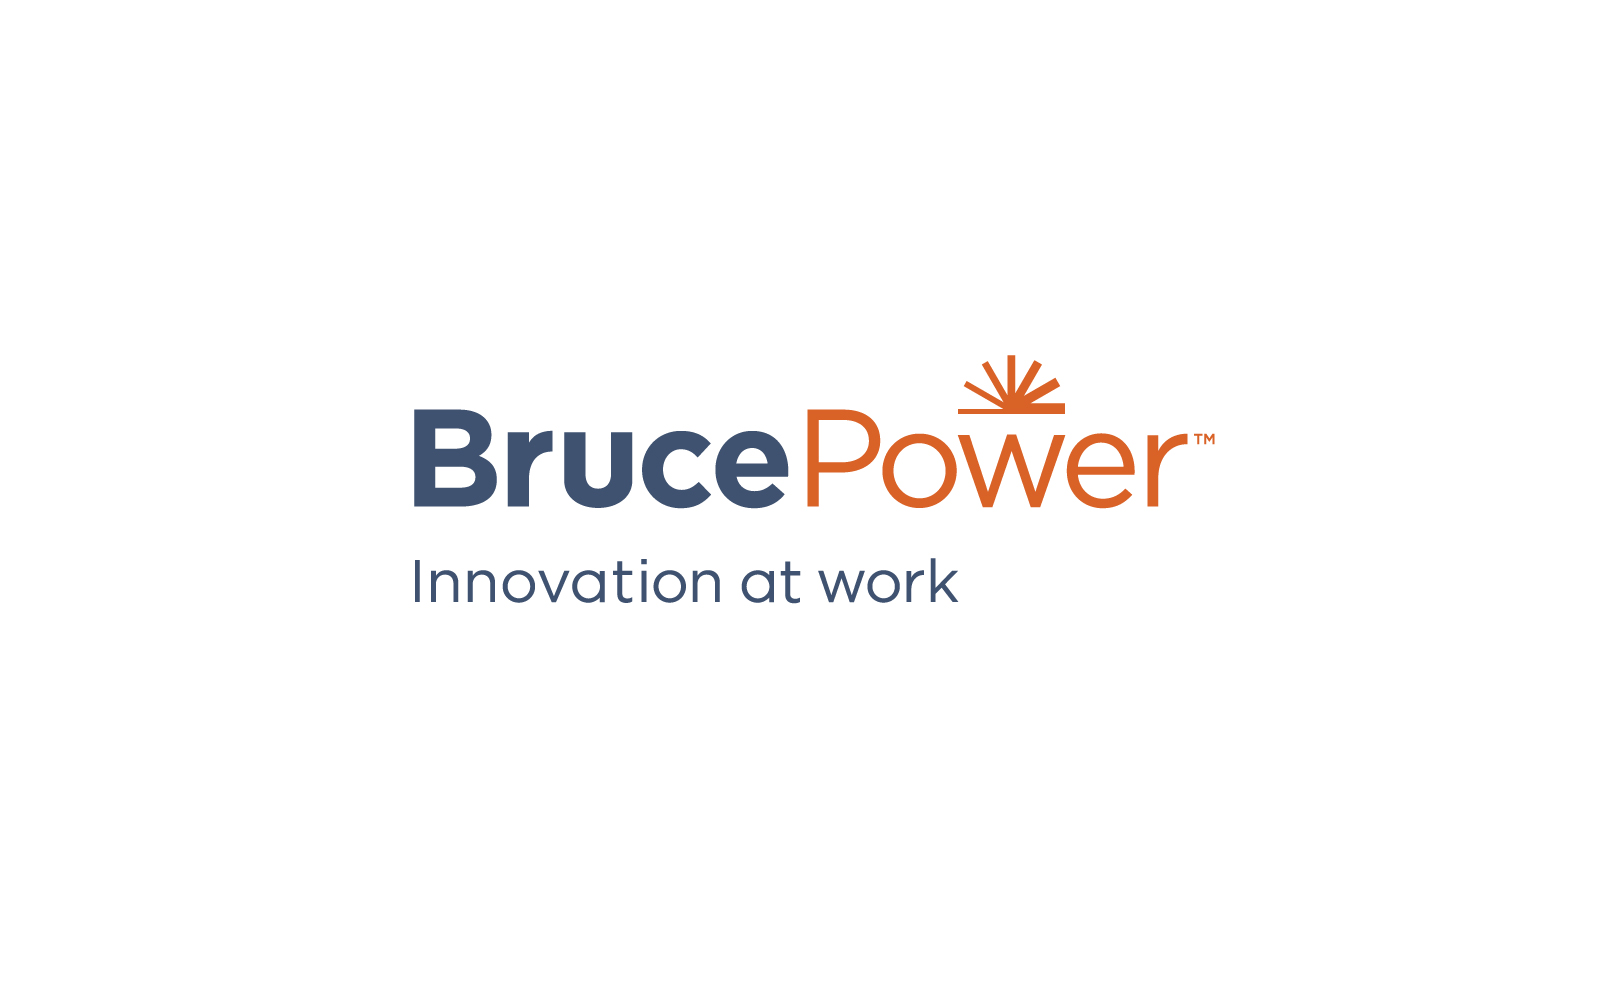 Bruce Power donates money for land purchase by Nature Conservancy of Canada